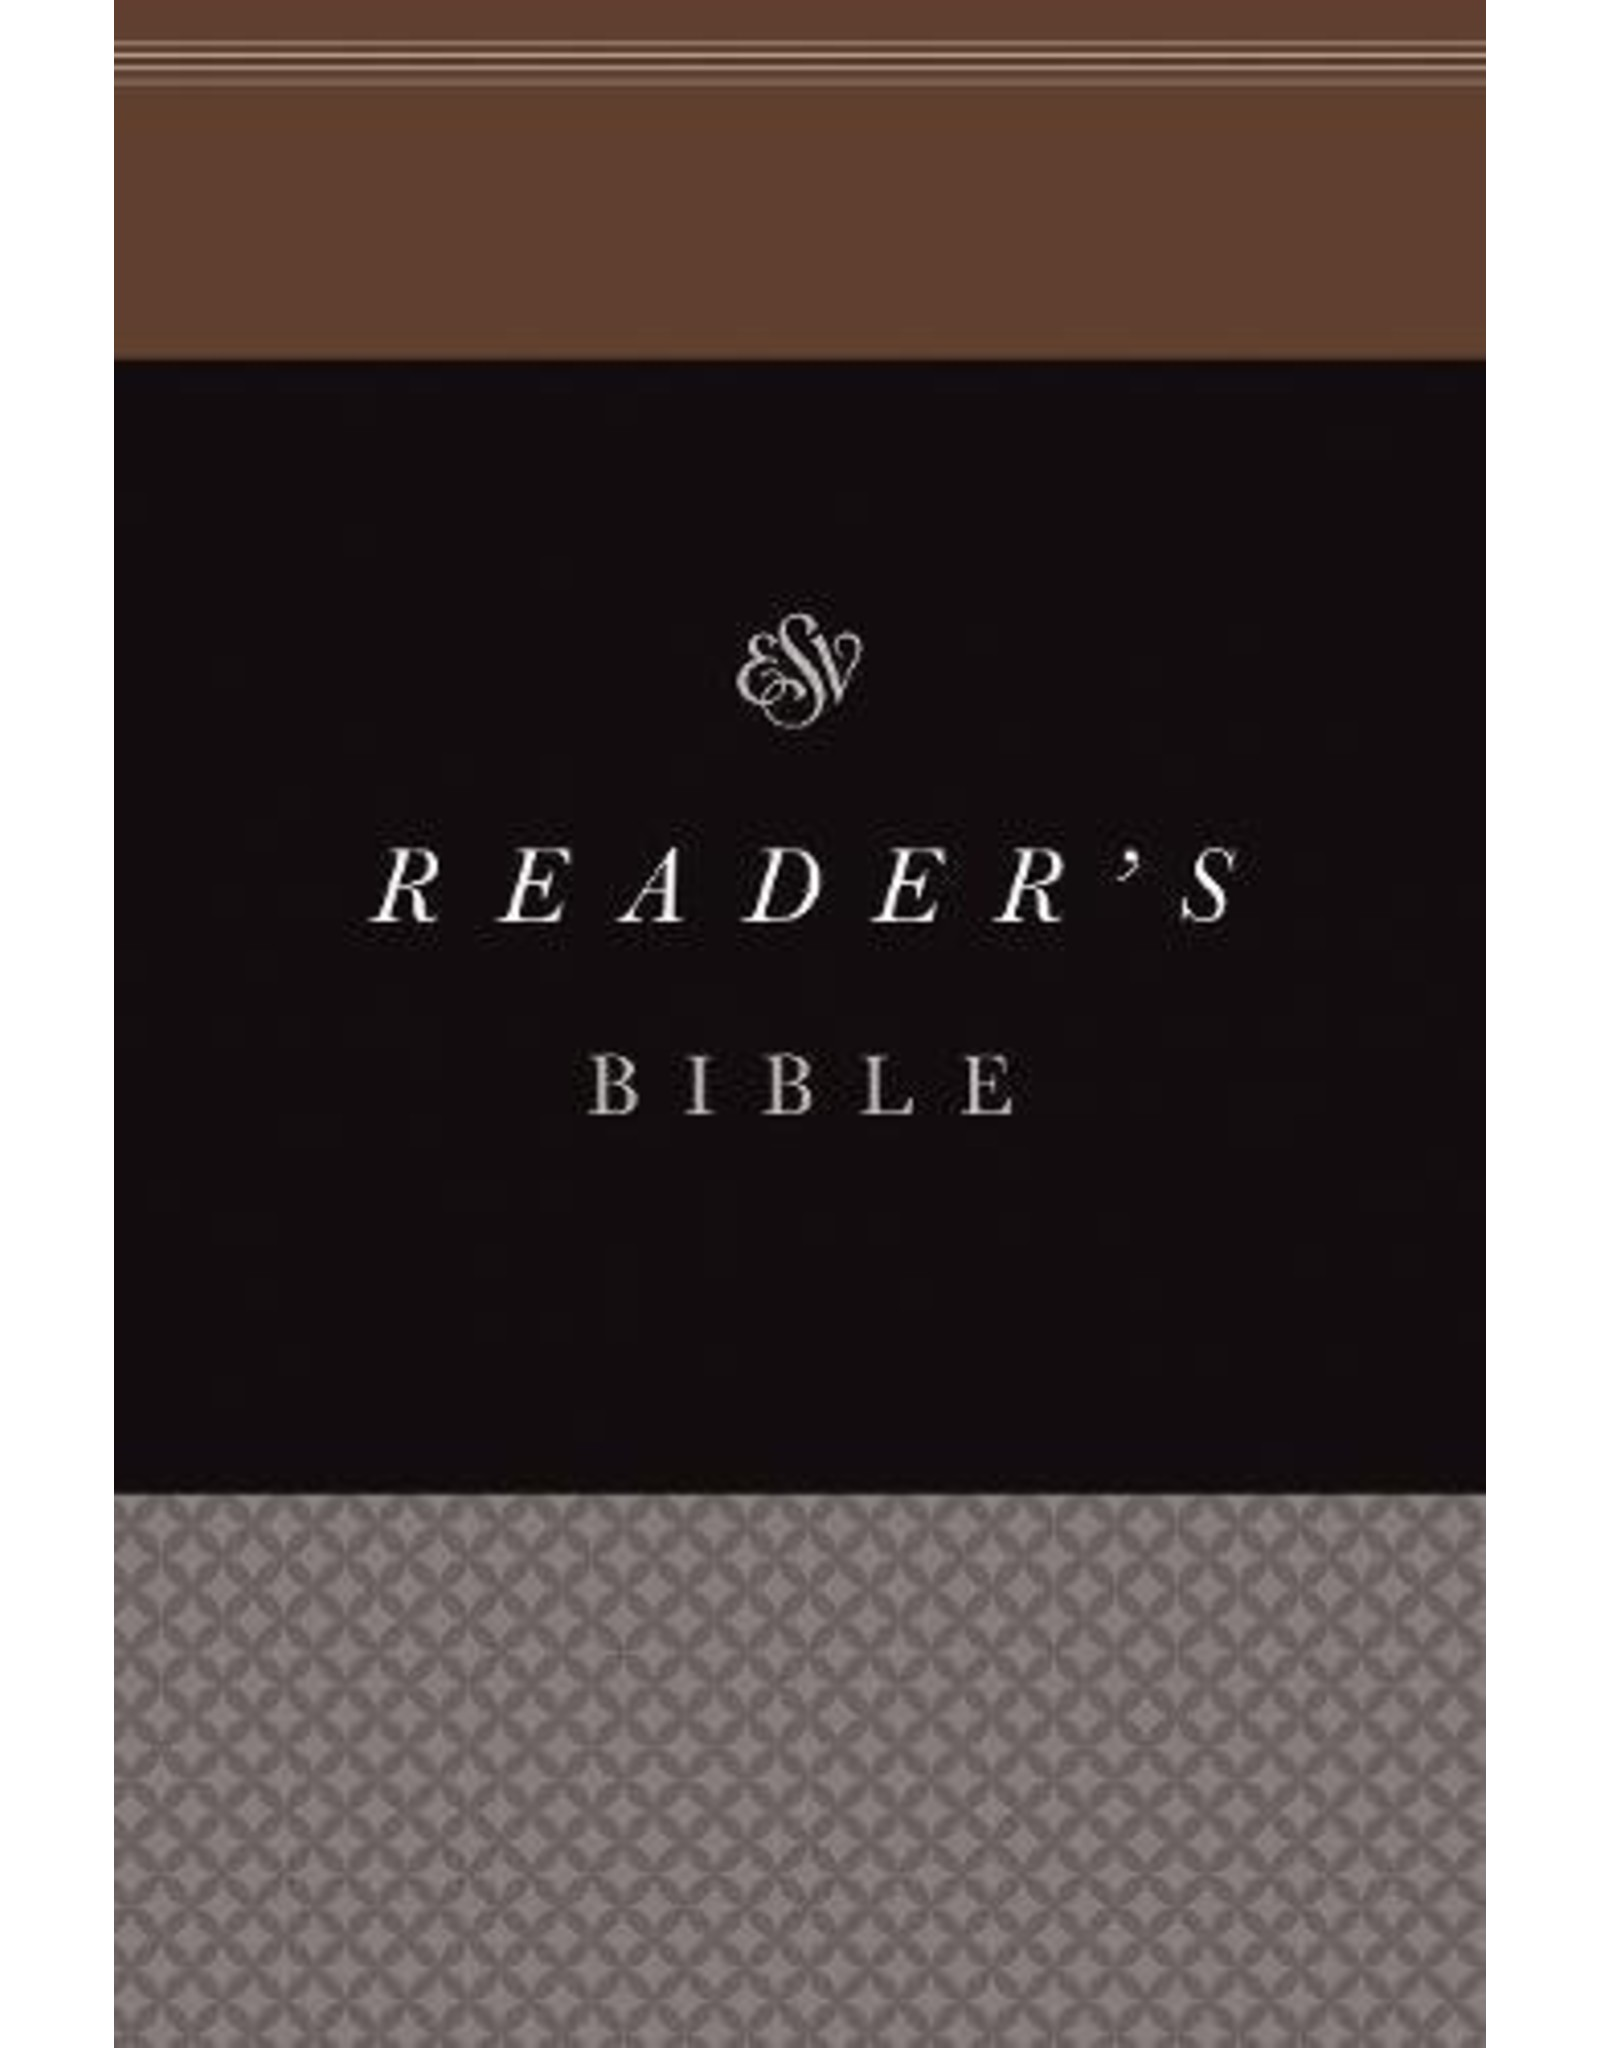 Crossway / Good News English Standard Version (ESV): Reader's Bible (Paperback)